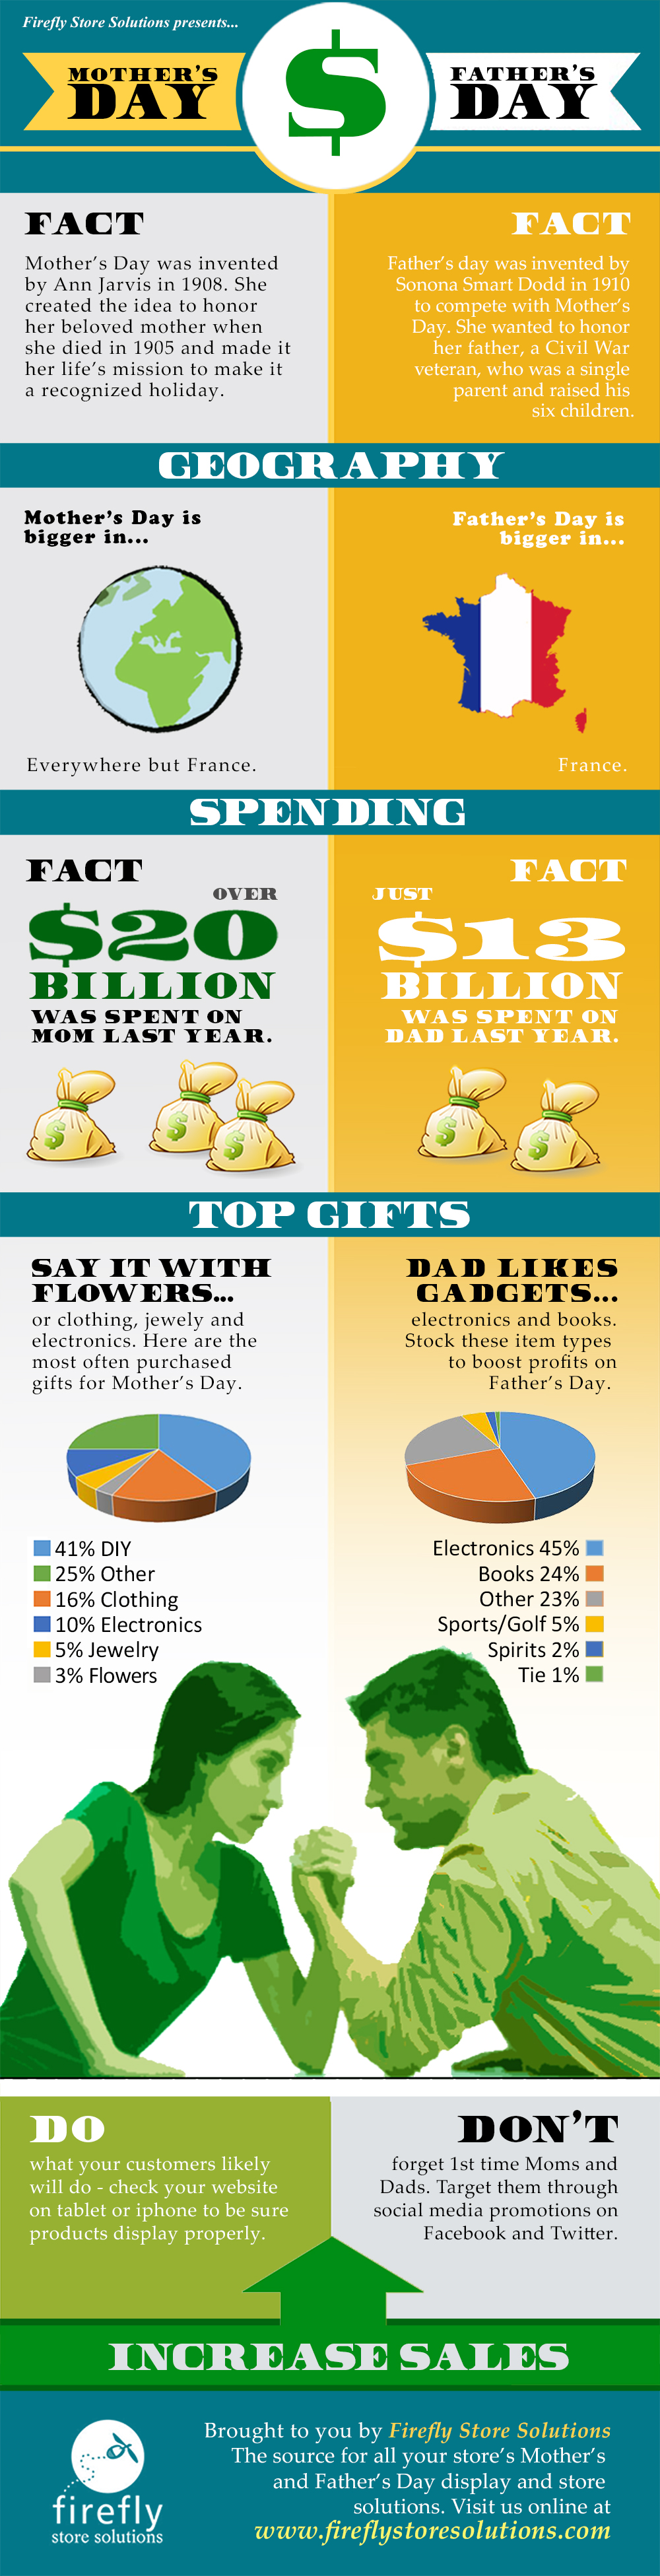 Infographic: Mother's Day vs. Father's Day